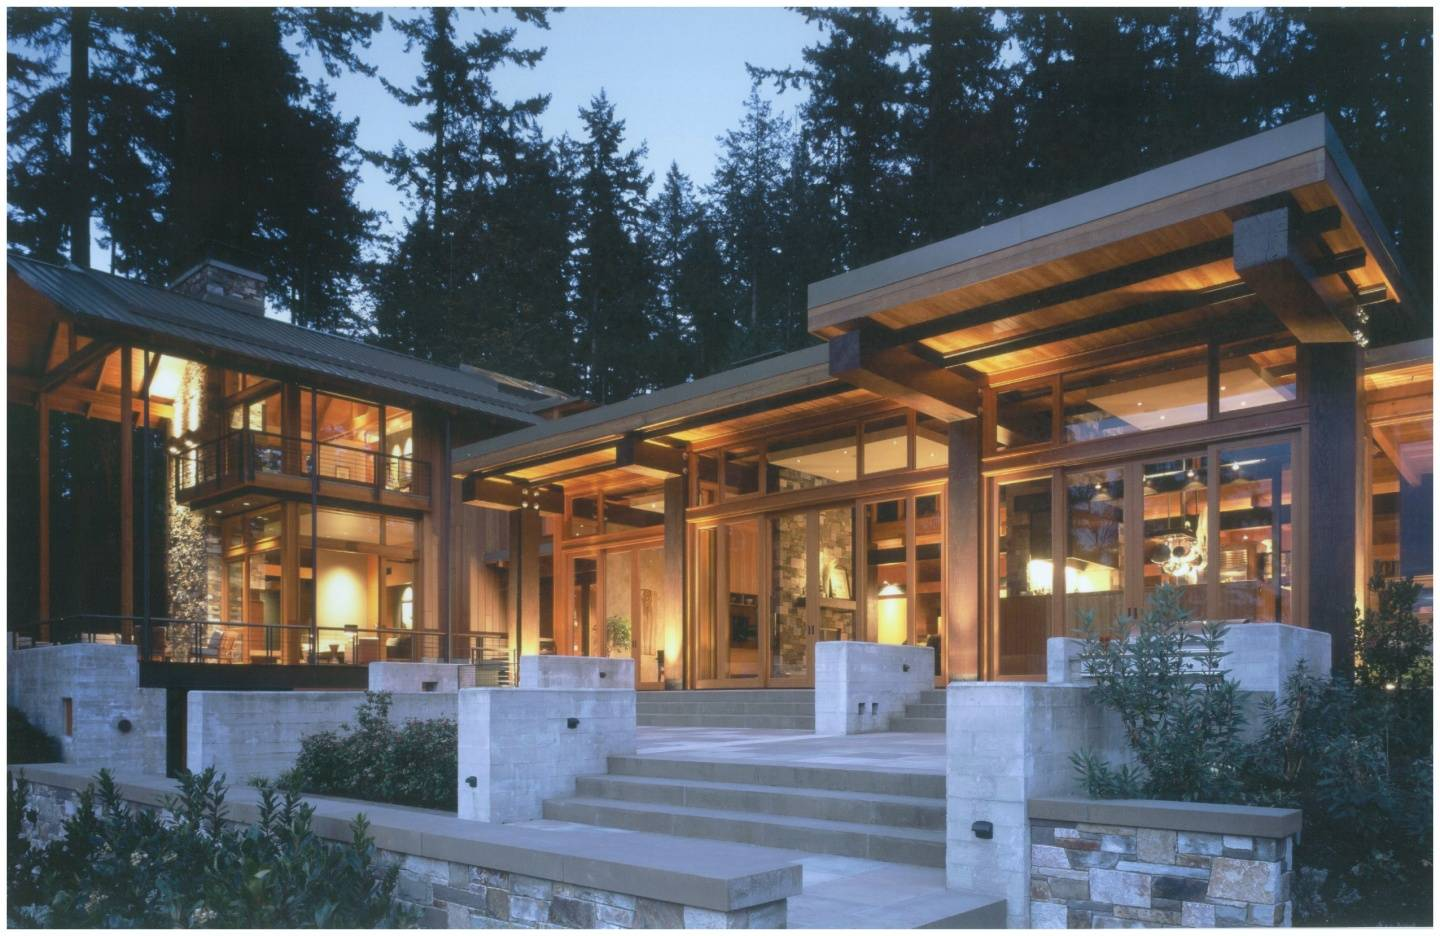 Top 5 picks of the week for Pacific northwest homes